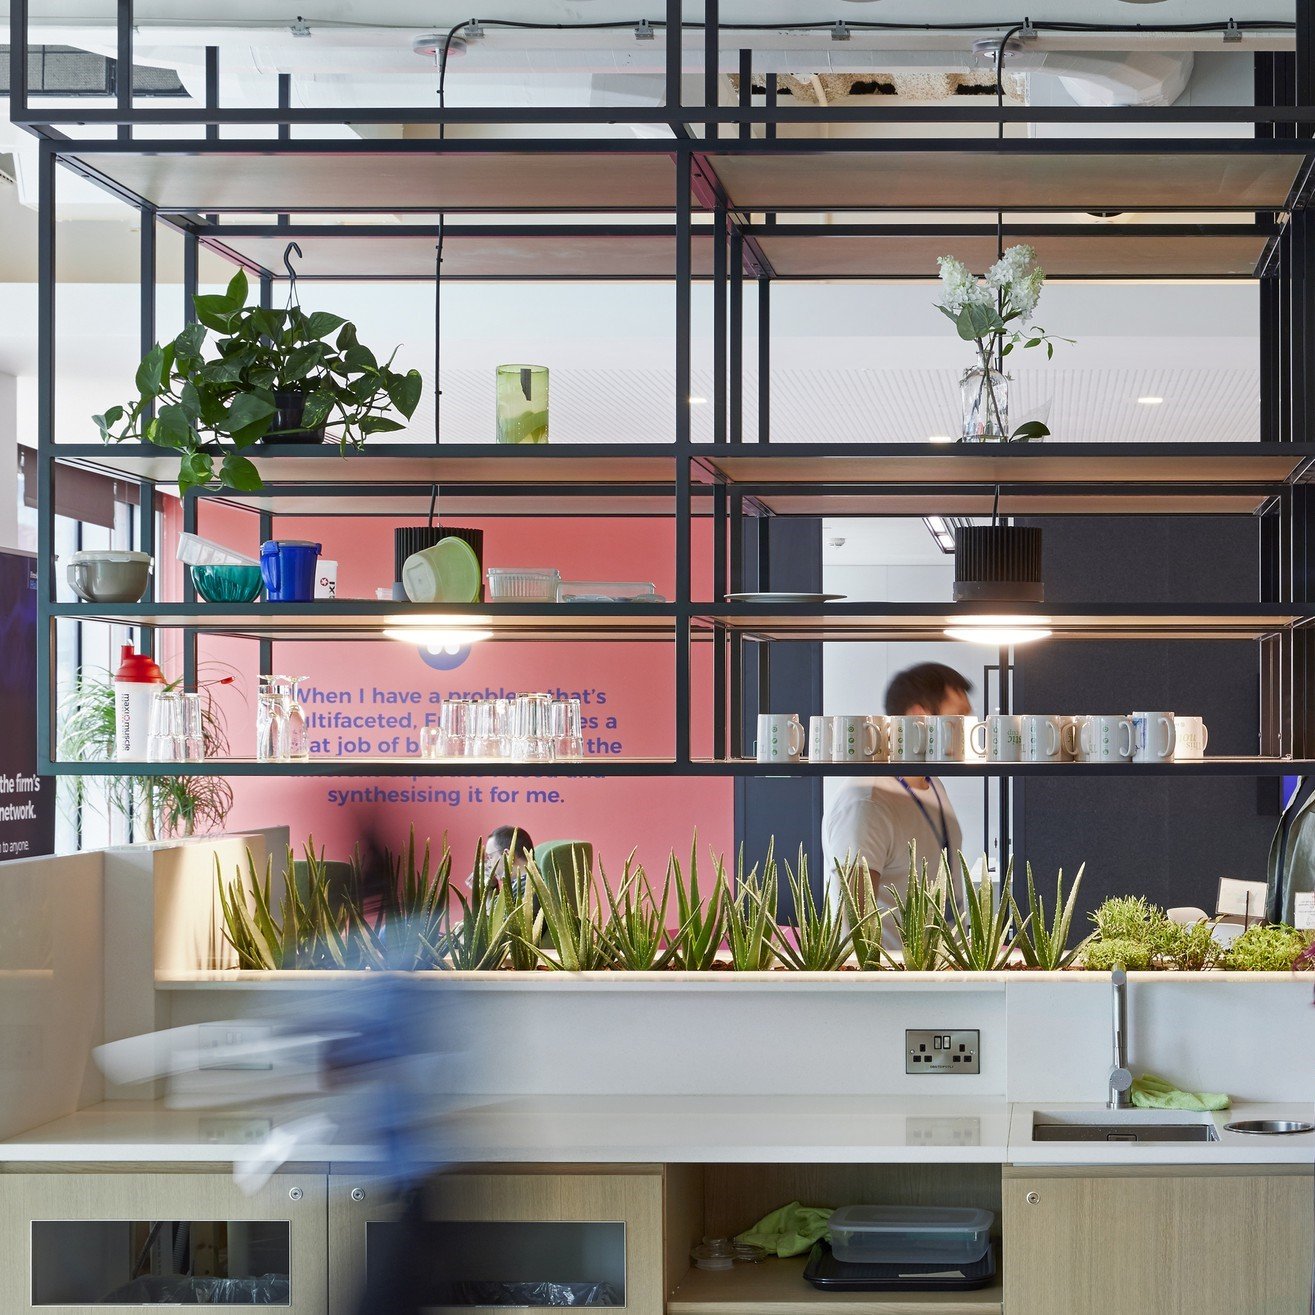 Office design has a role to play in reflecting neurological differences